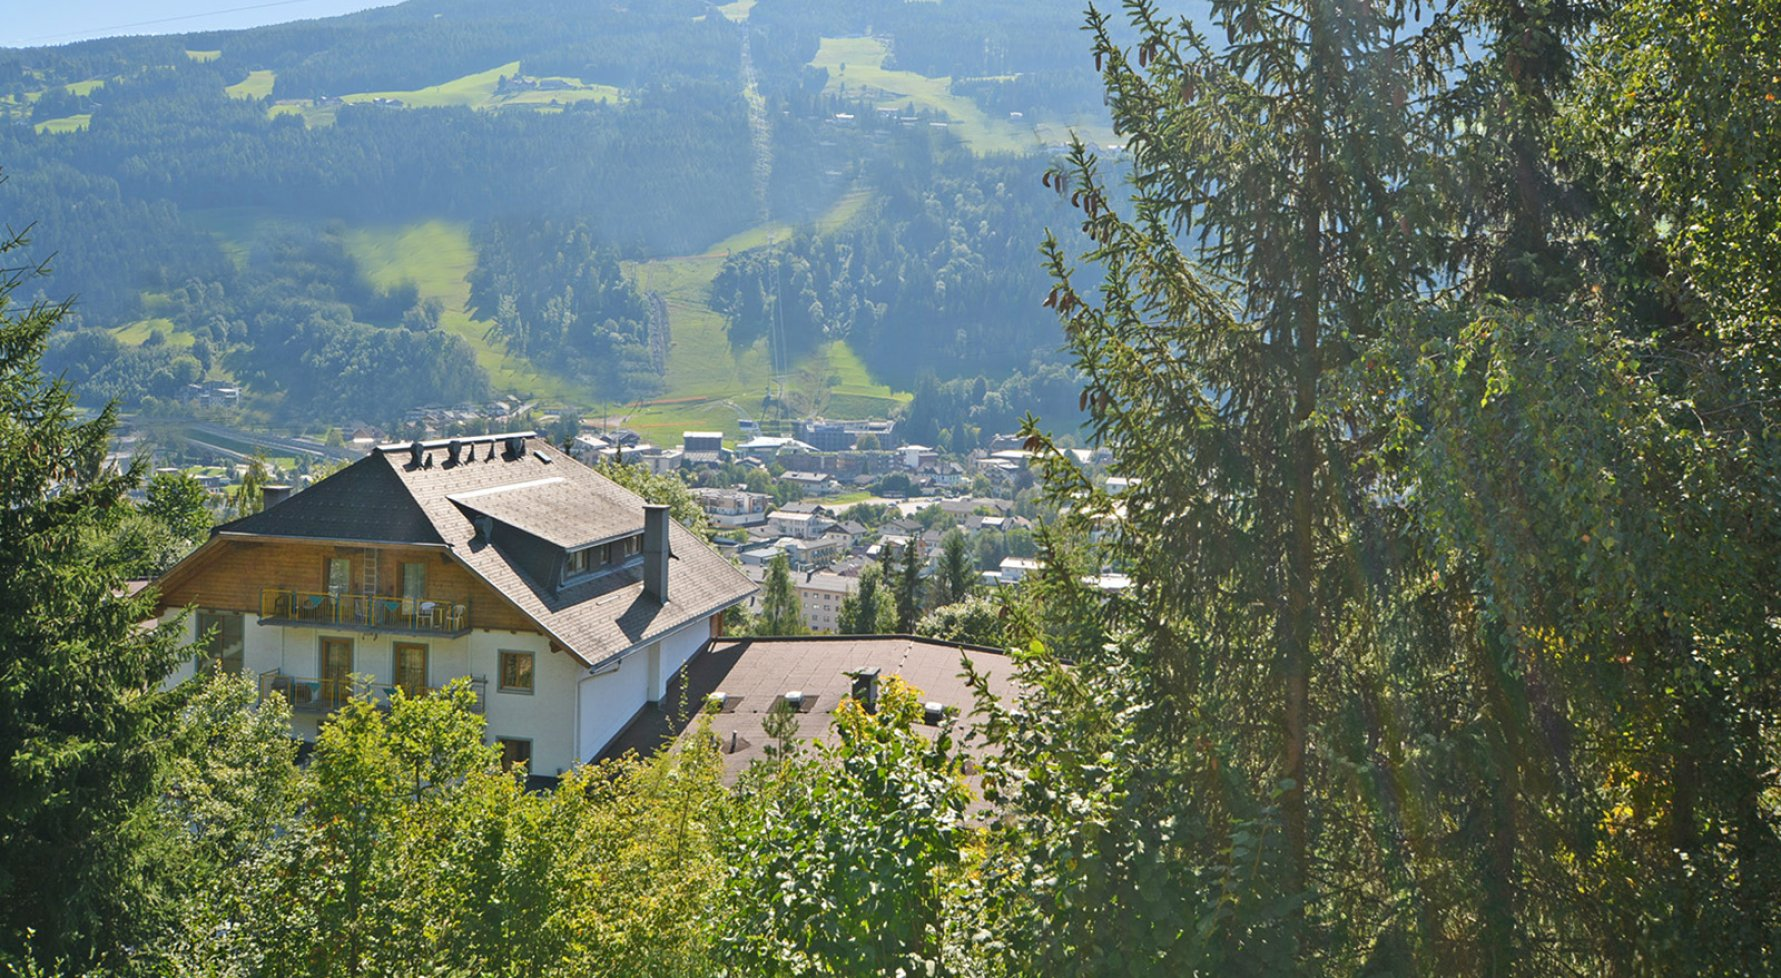 Property in 8970 Schladming: Magnificent ski slopes - Semi-detached house with second residency designation  - picture 1